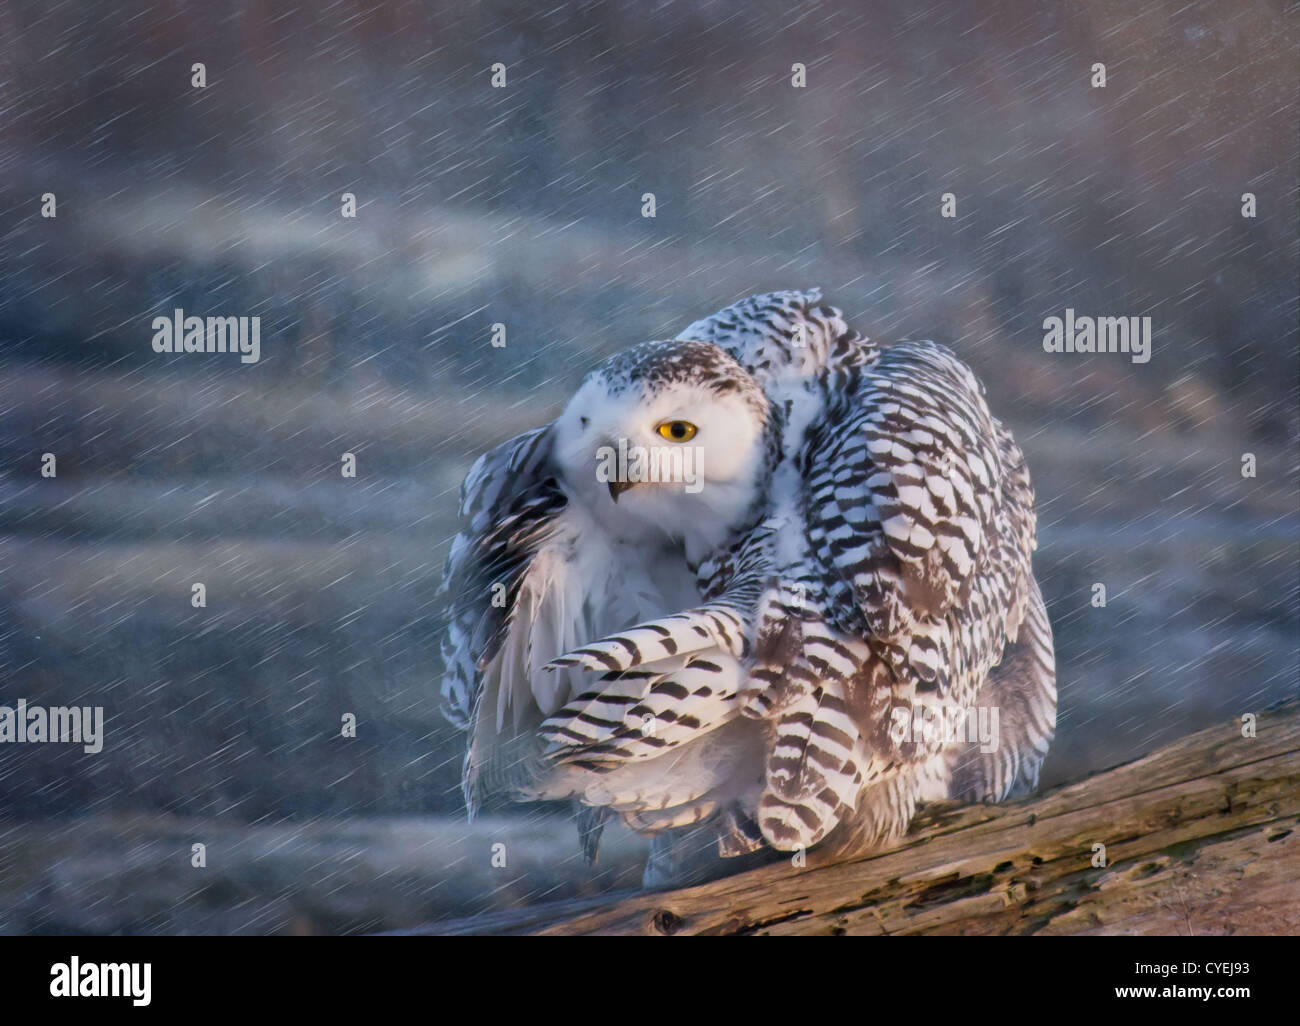 Snowy Owl hunched against blowing snow - Stock Image